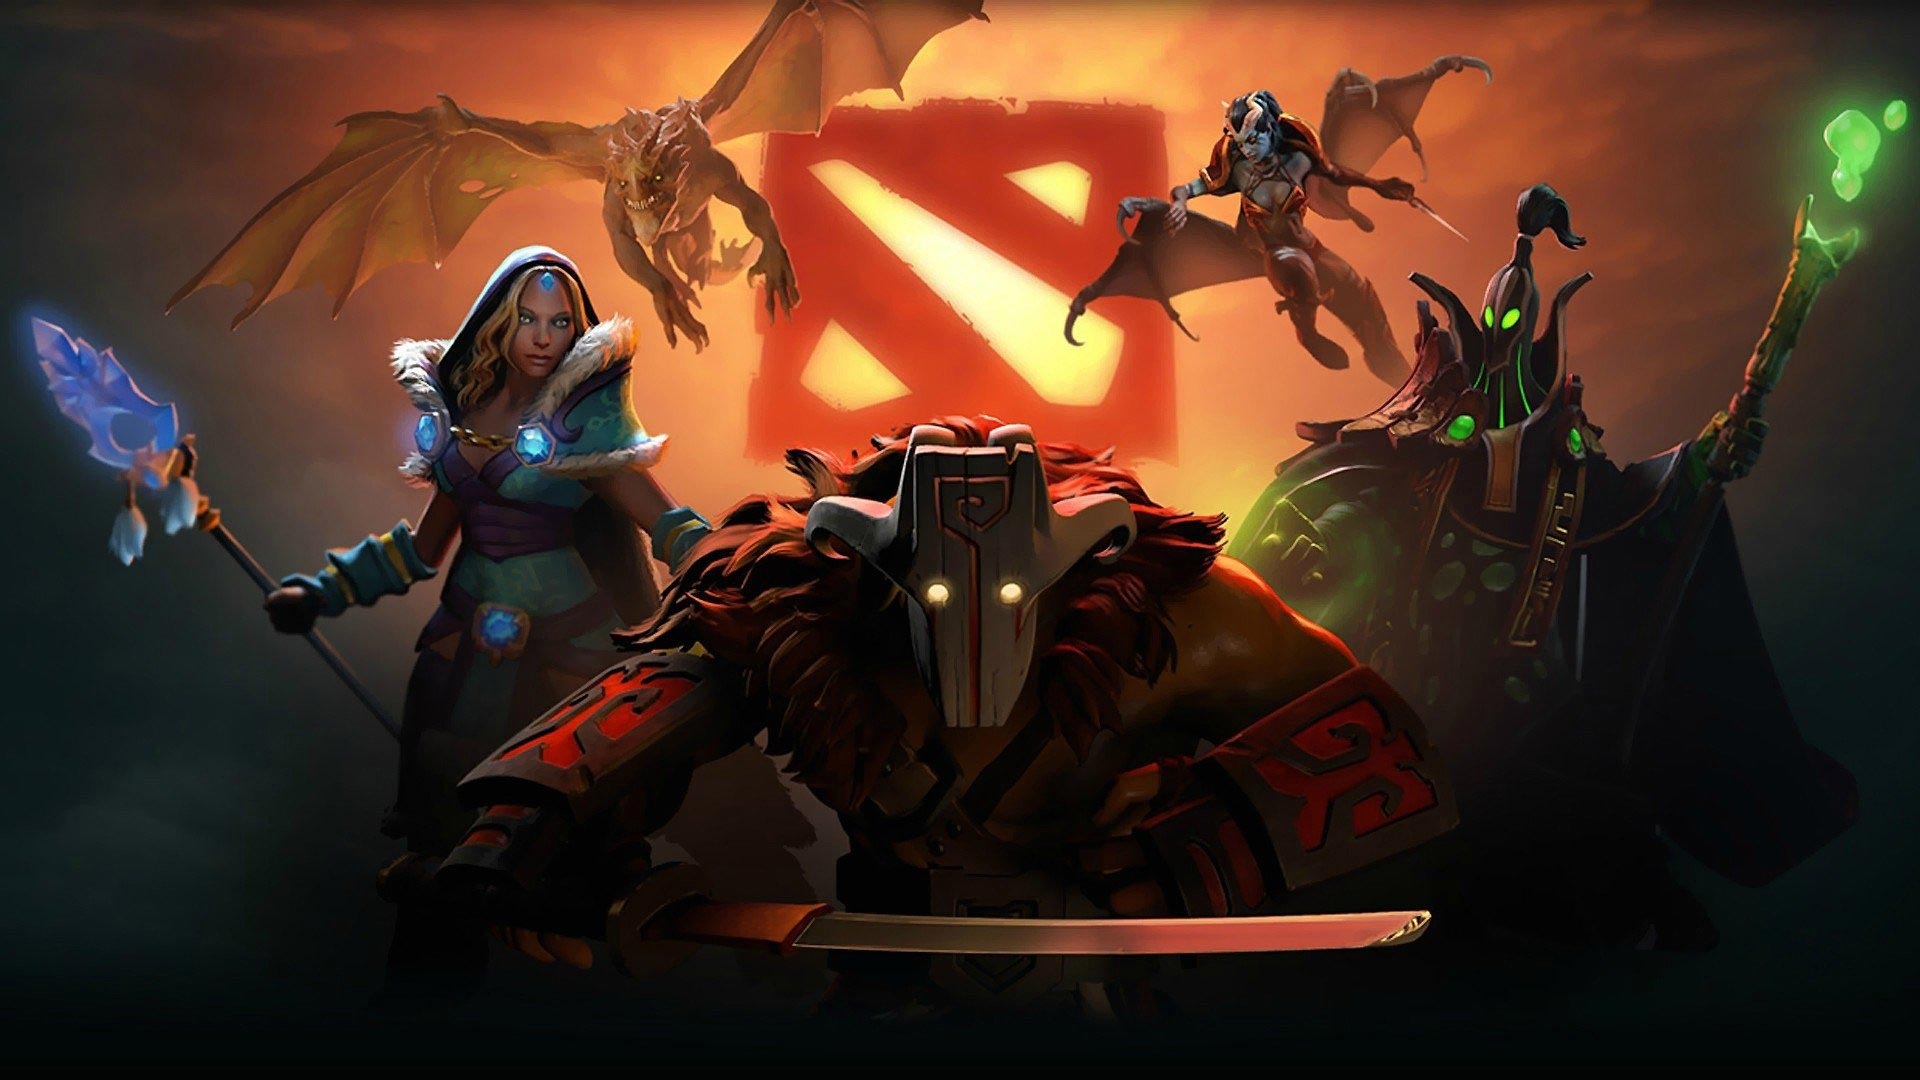 Wallpaper Dota Imba Legends